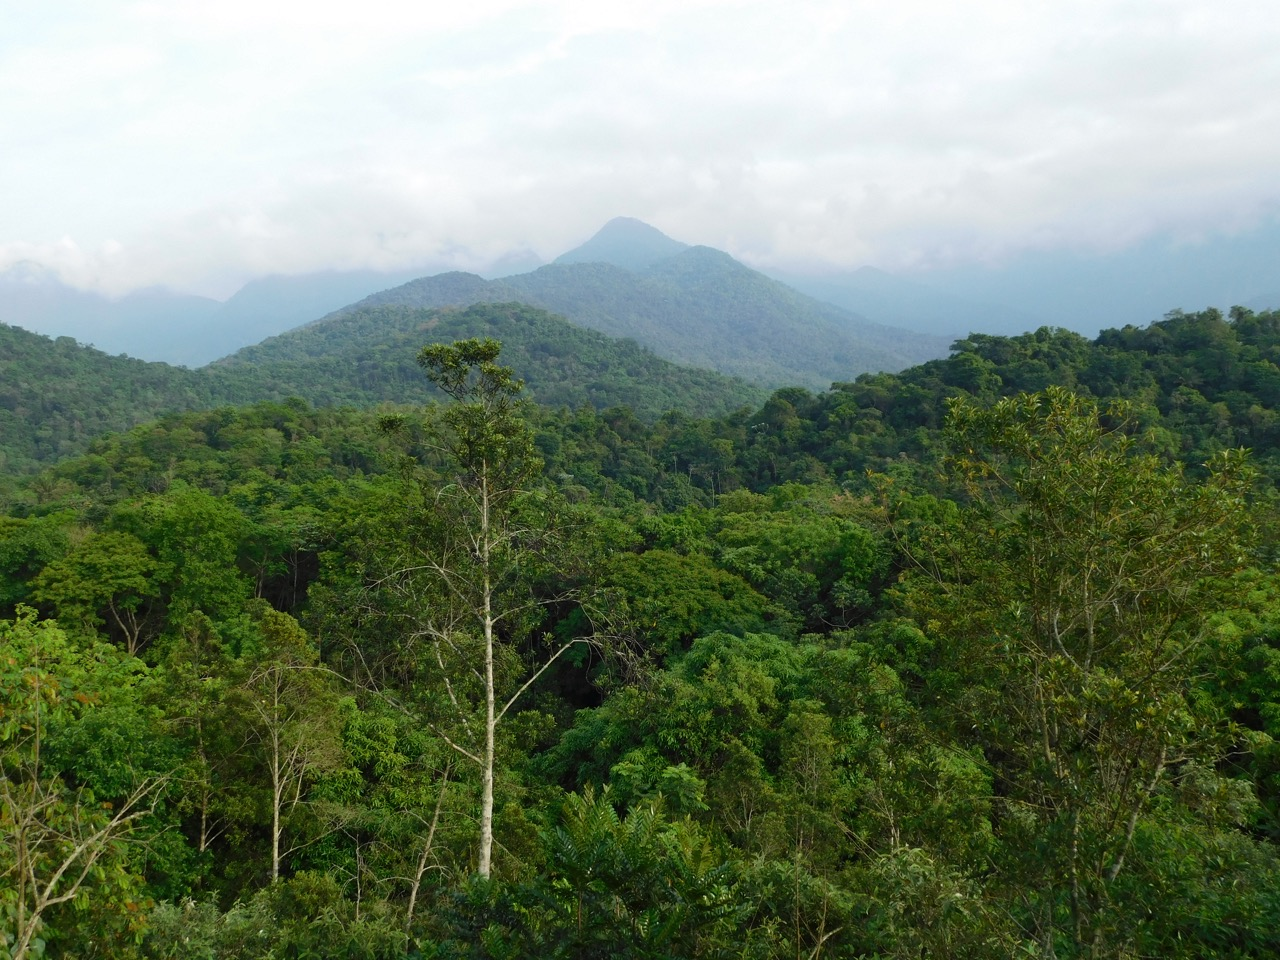 Bringing Forth the Earth's Rainforests